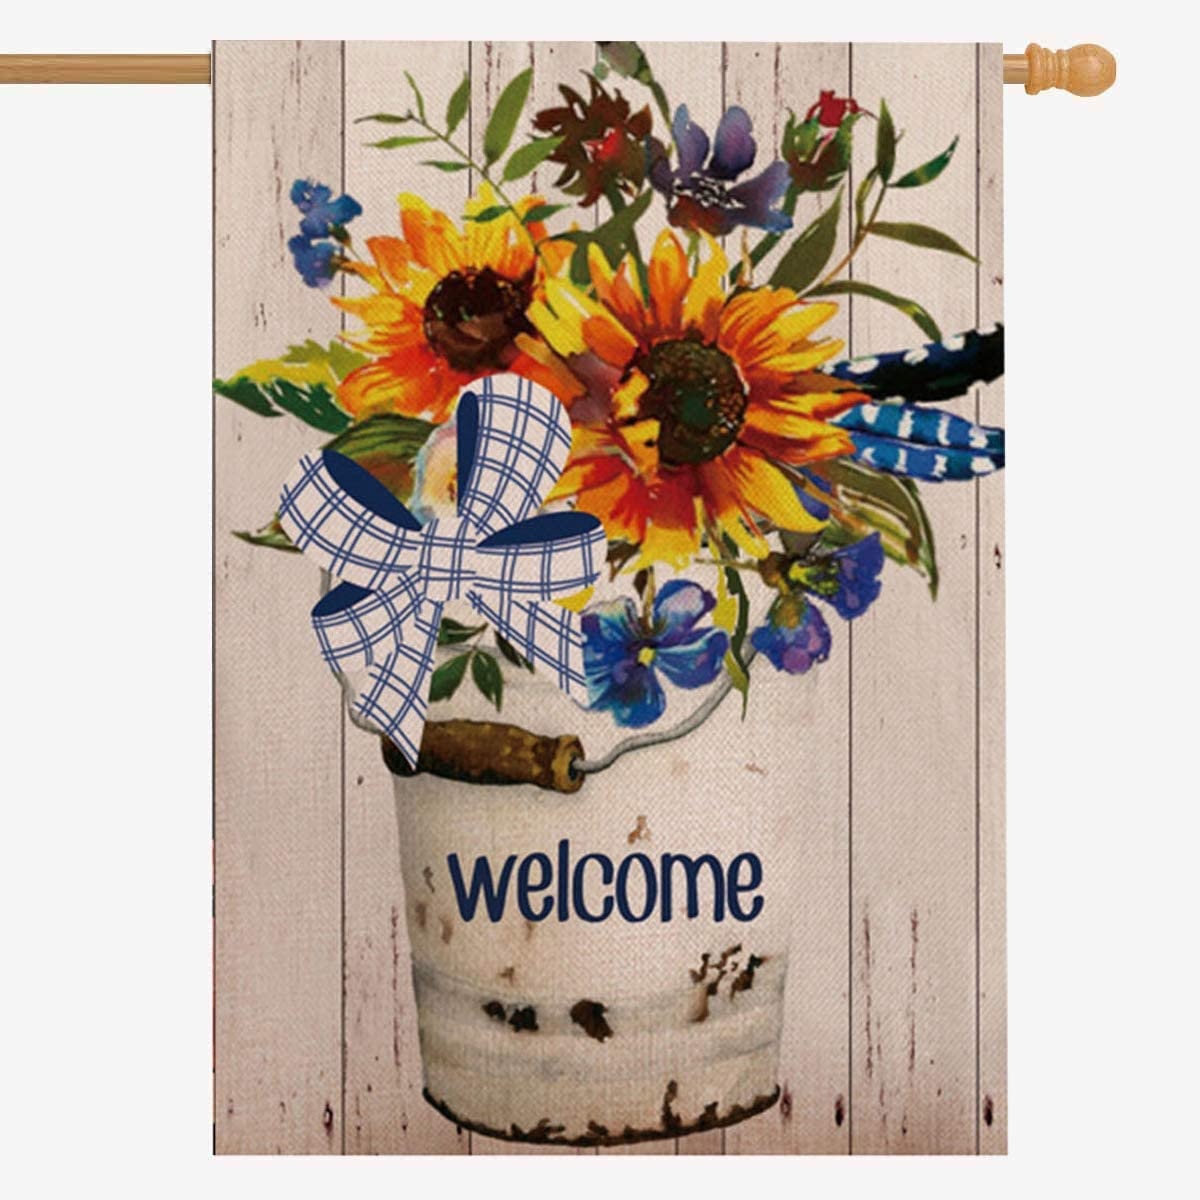 ZUEXT Welcome Home Sunflower Flower Basket Cotton Linen House Flag Vertical Double Sided, House Yard Flag Floral, Happiness House Yard Decorations 28 x 40 Inch for Housewarming Gift Wedding Gifts